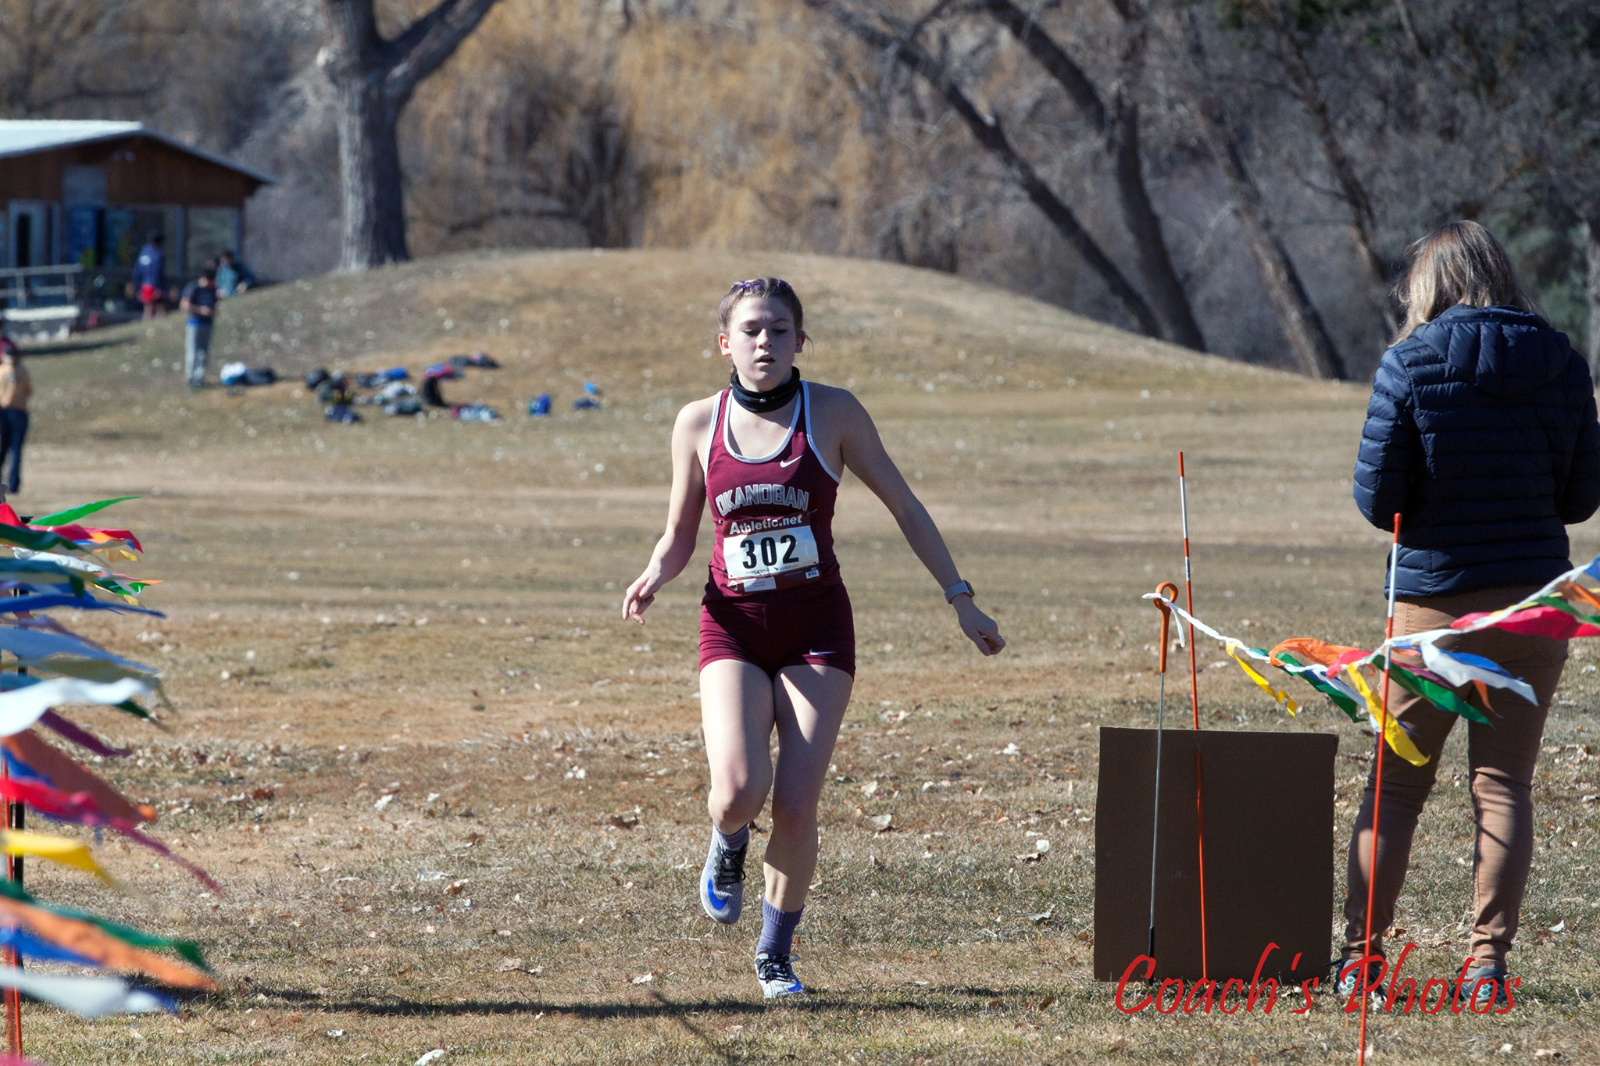 HSXC – March 6th, 2021 – Photos by Craig Nelson